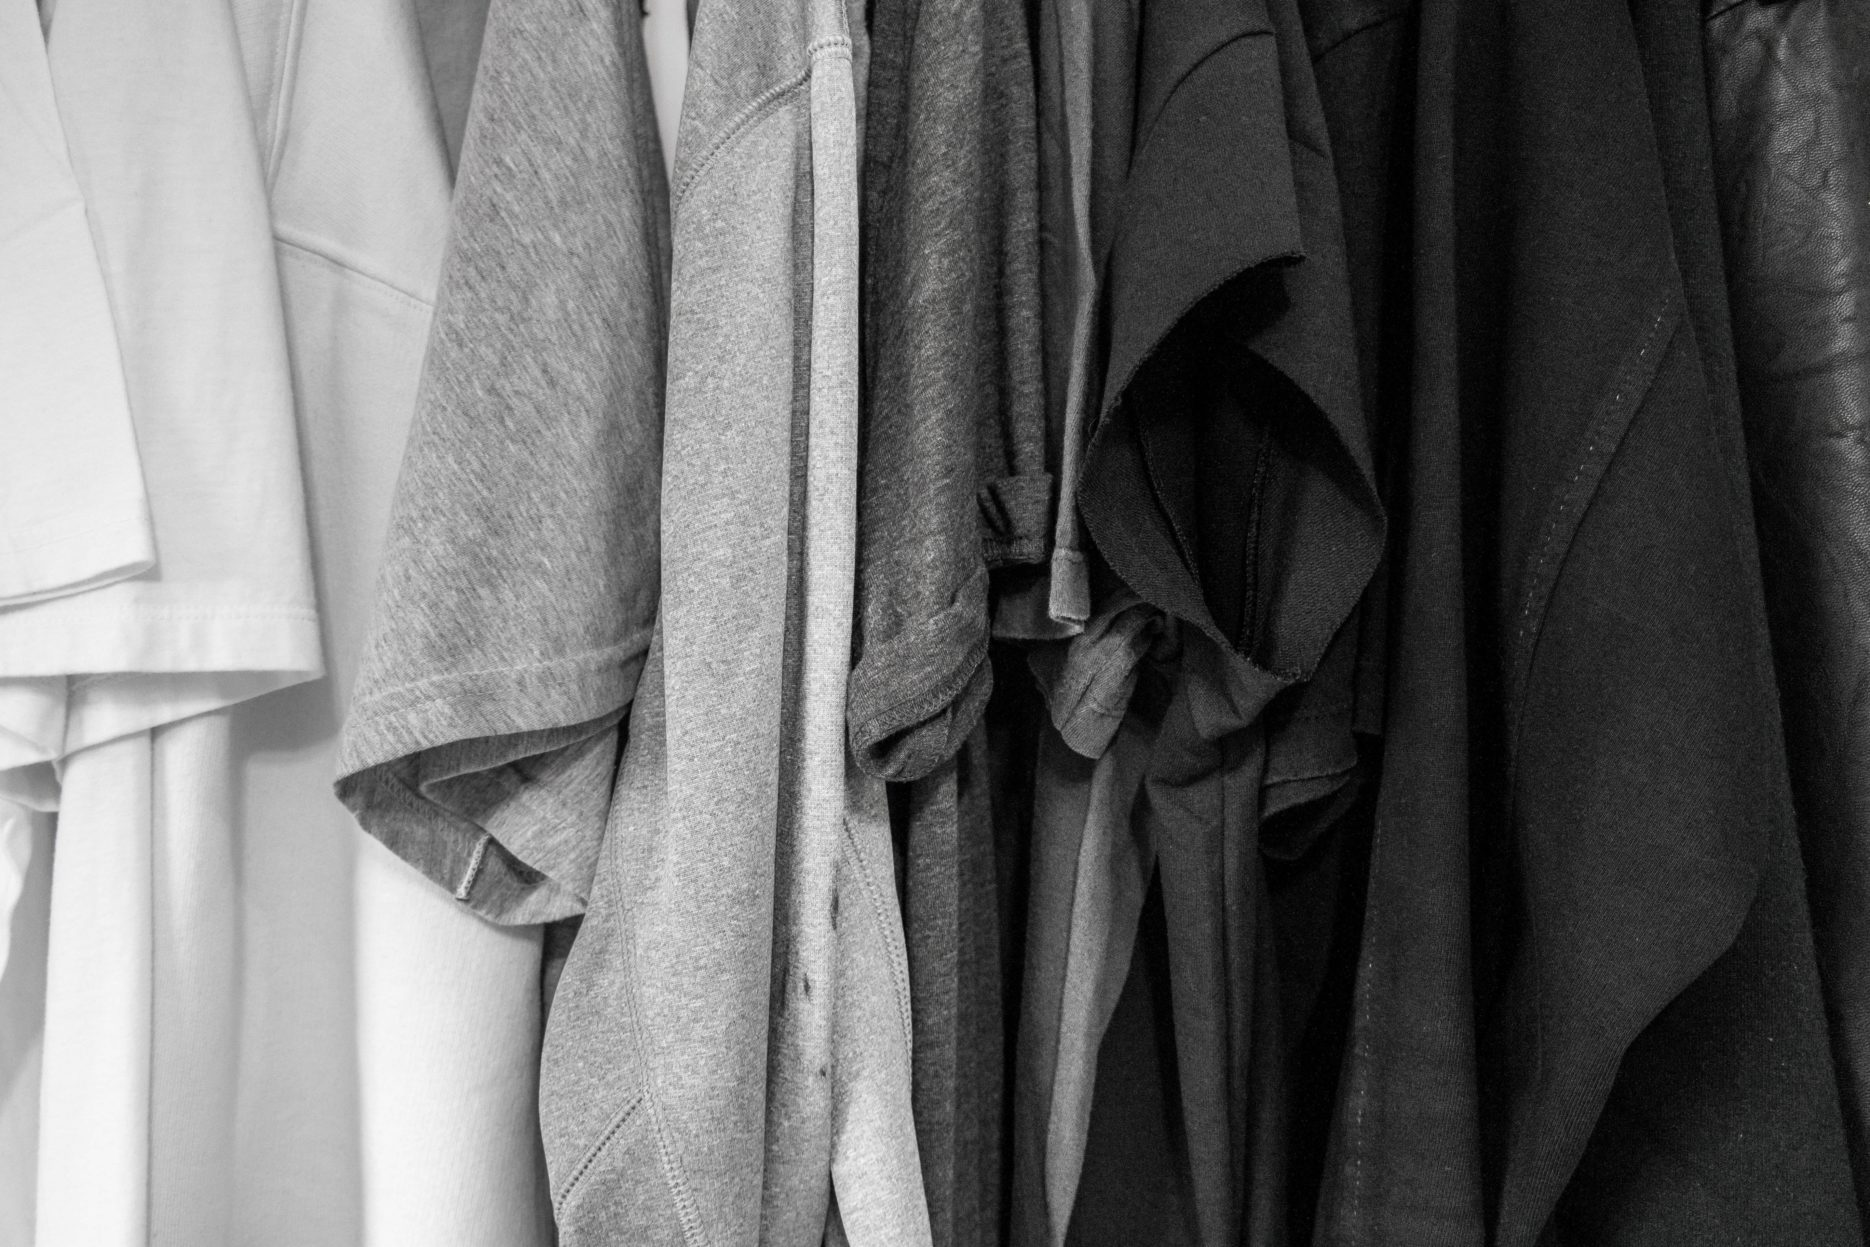 Grey clothes hanging on a line